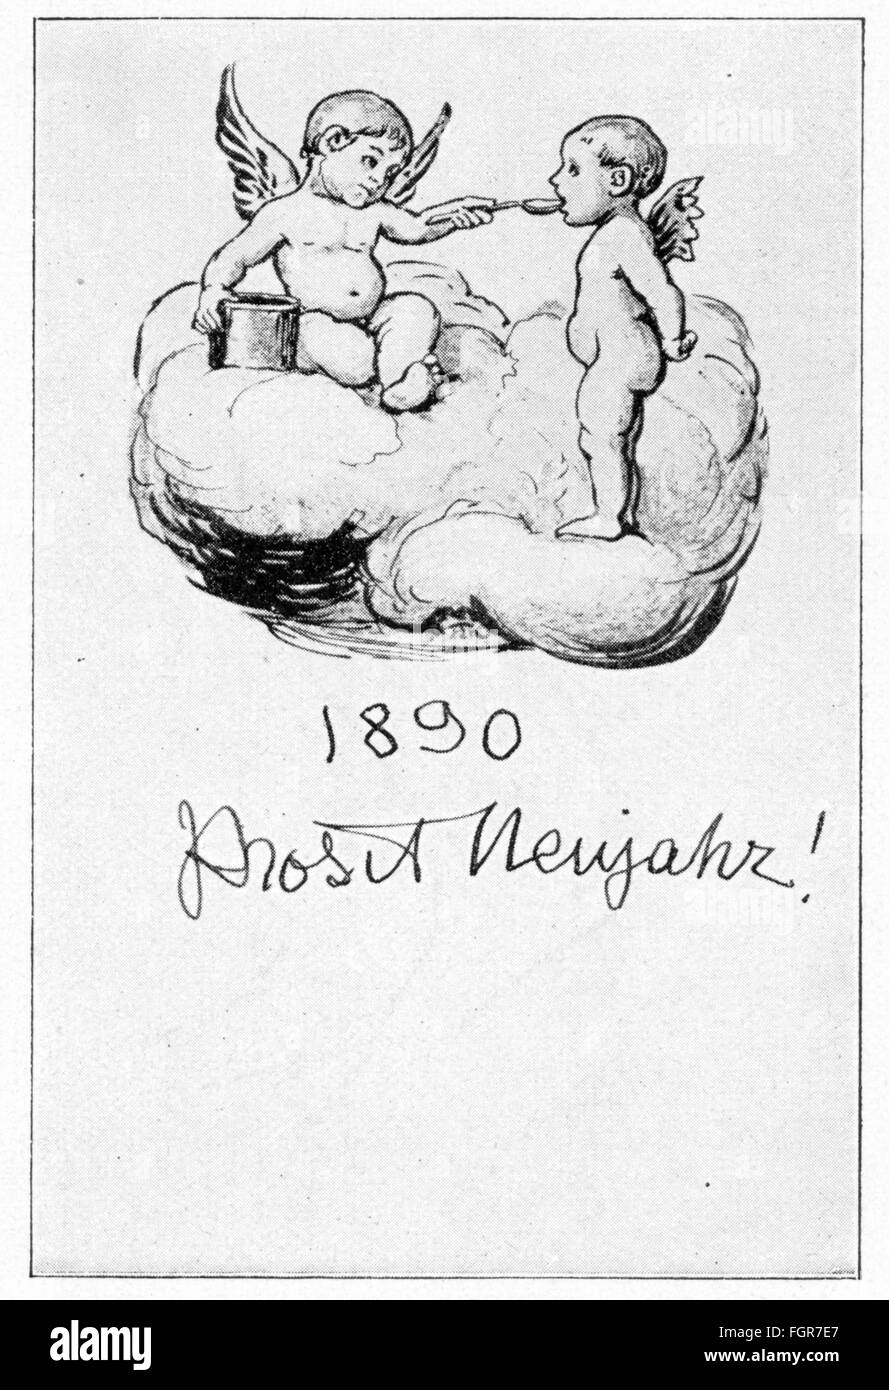 festivity new years eve prosit neujahr happy new year greetings card by hans thoma 1839 1924 1890 additional rights clearences na